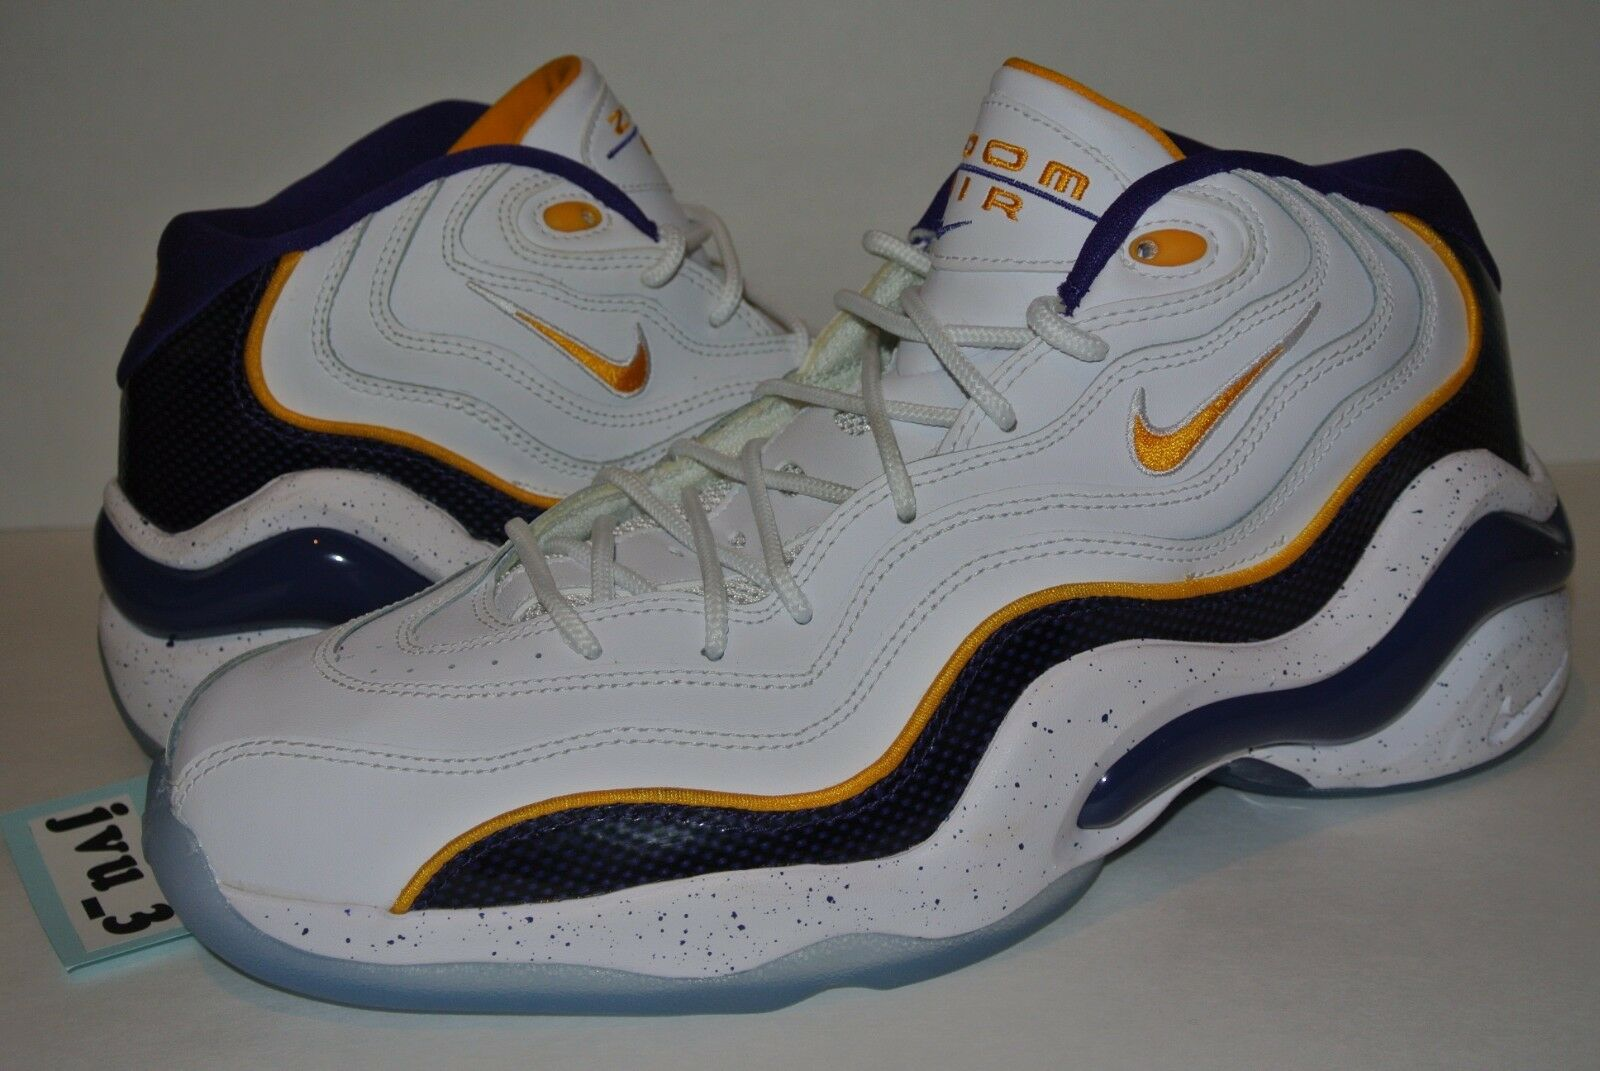 42d0a9130c0a3 UPC 884726959954 product image for Ds Nike Air Zoom Flight 96 Size 10 Kobe  Bryant Lakers